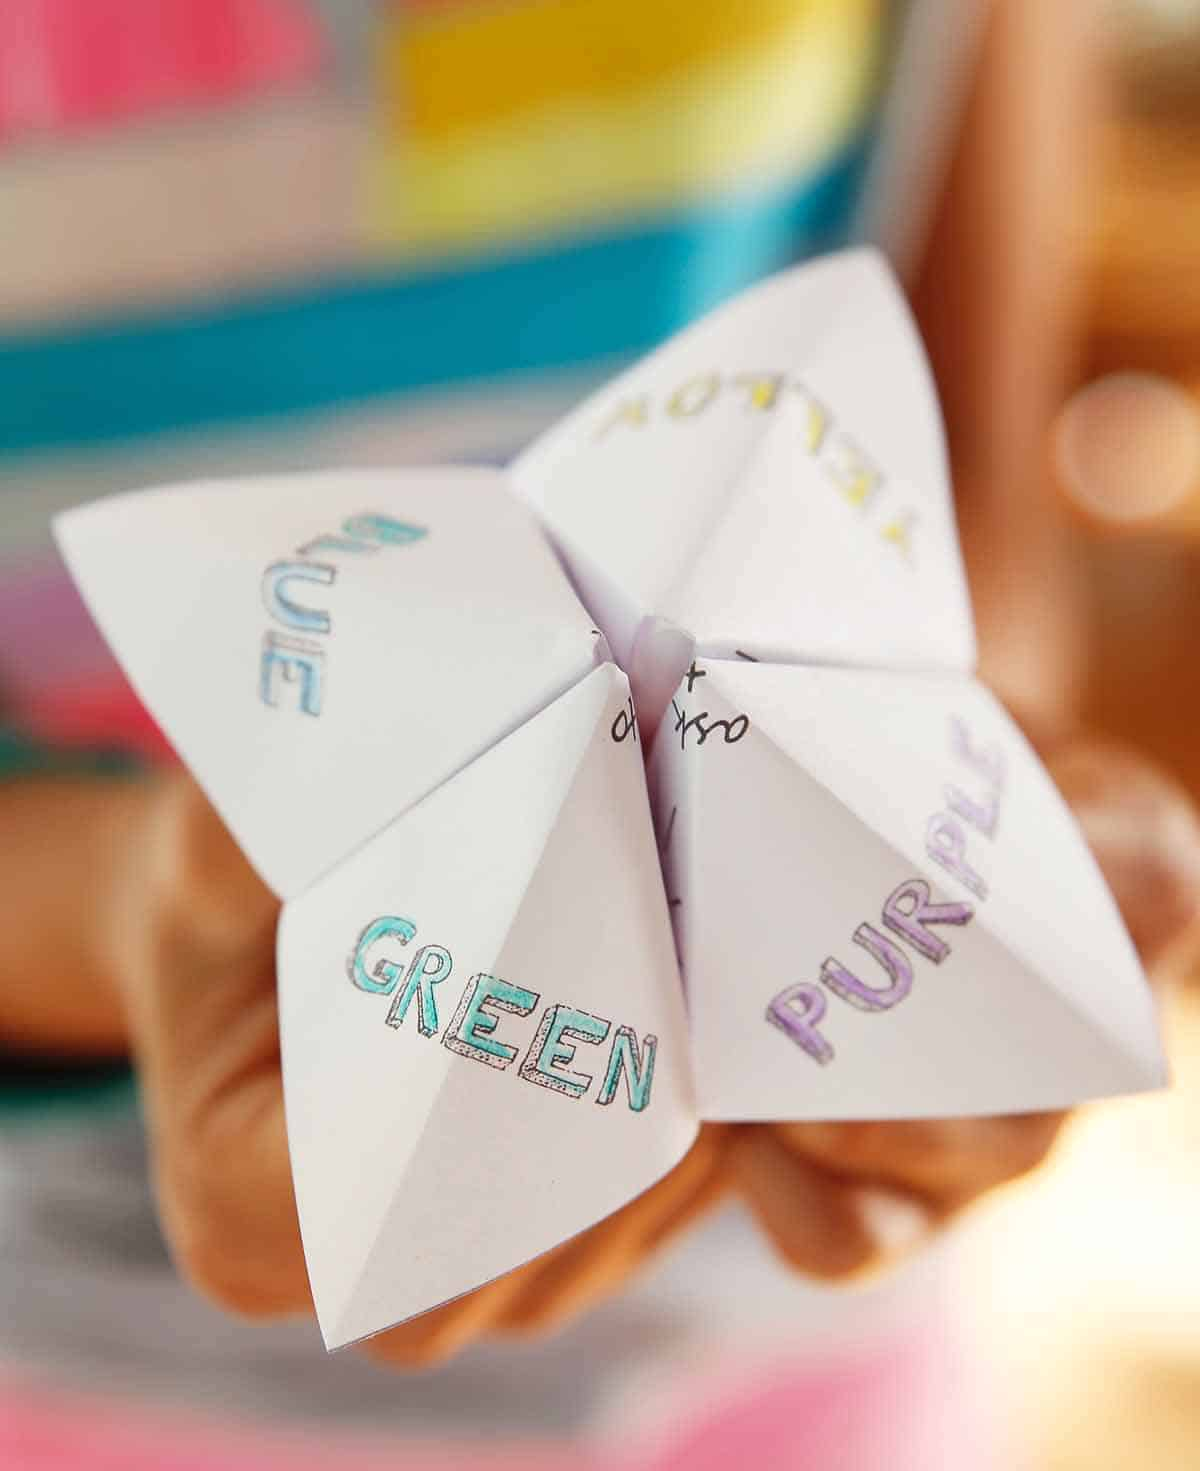 Printable paper fortune teller to keep the kids busy at your wedding!